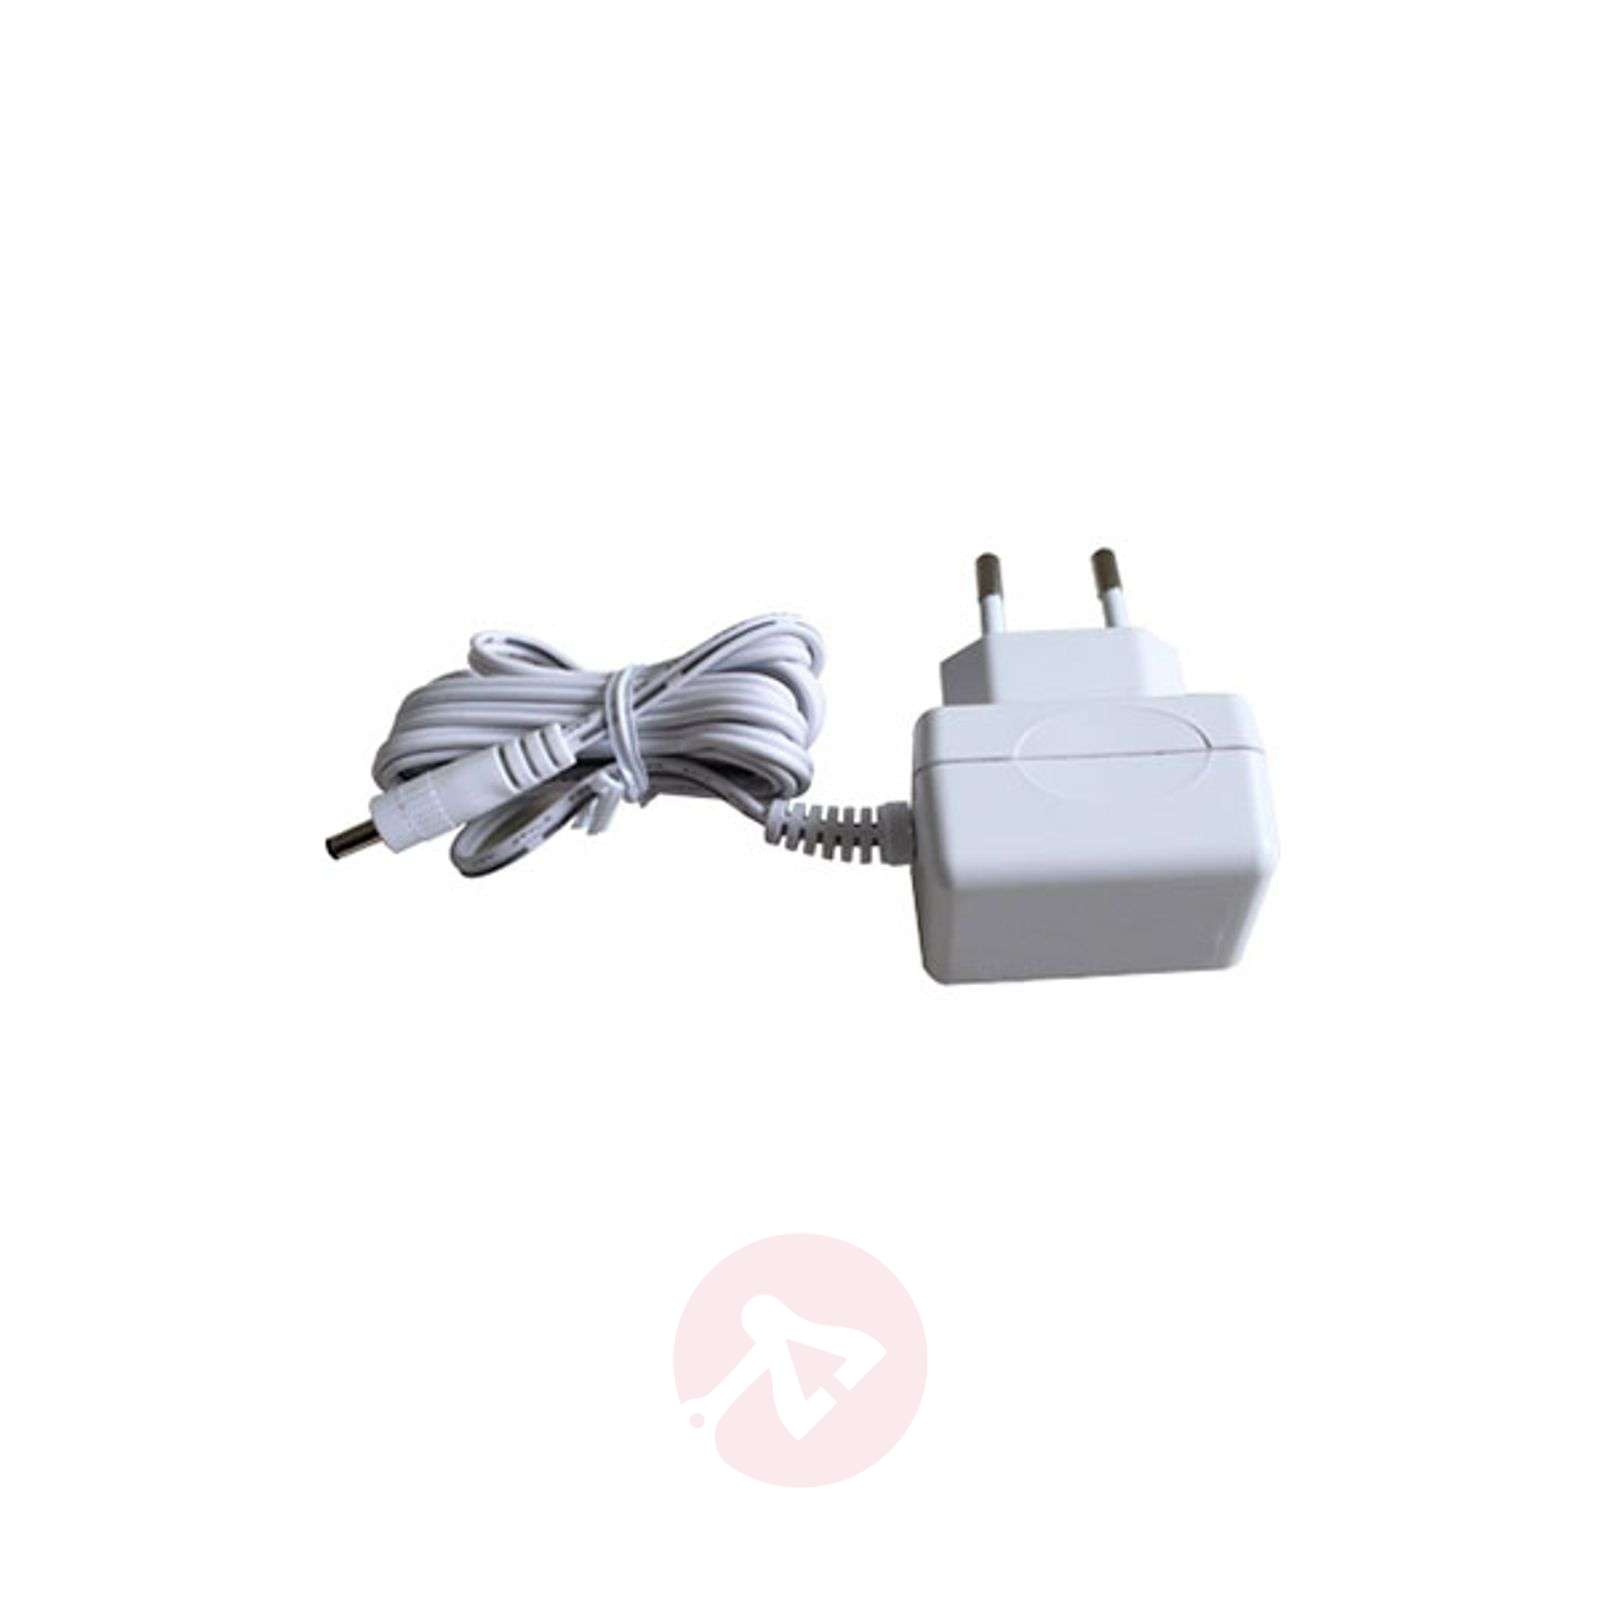 Driver LED 6W, 24V per Fabas Luce Galway 6690-3502415-01